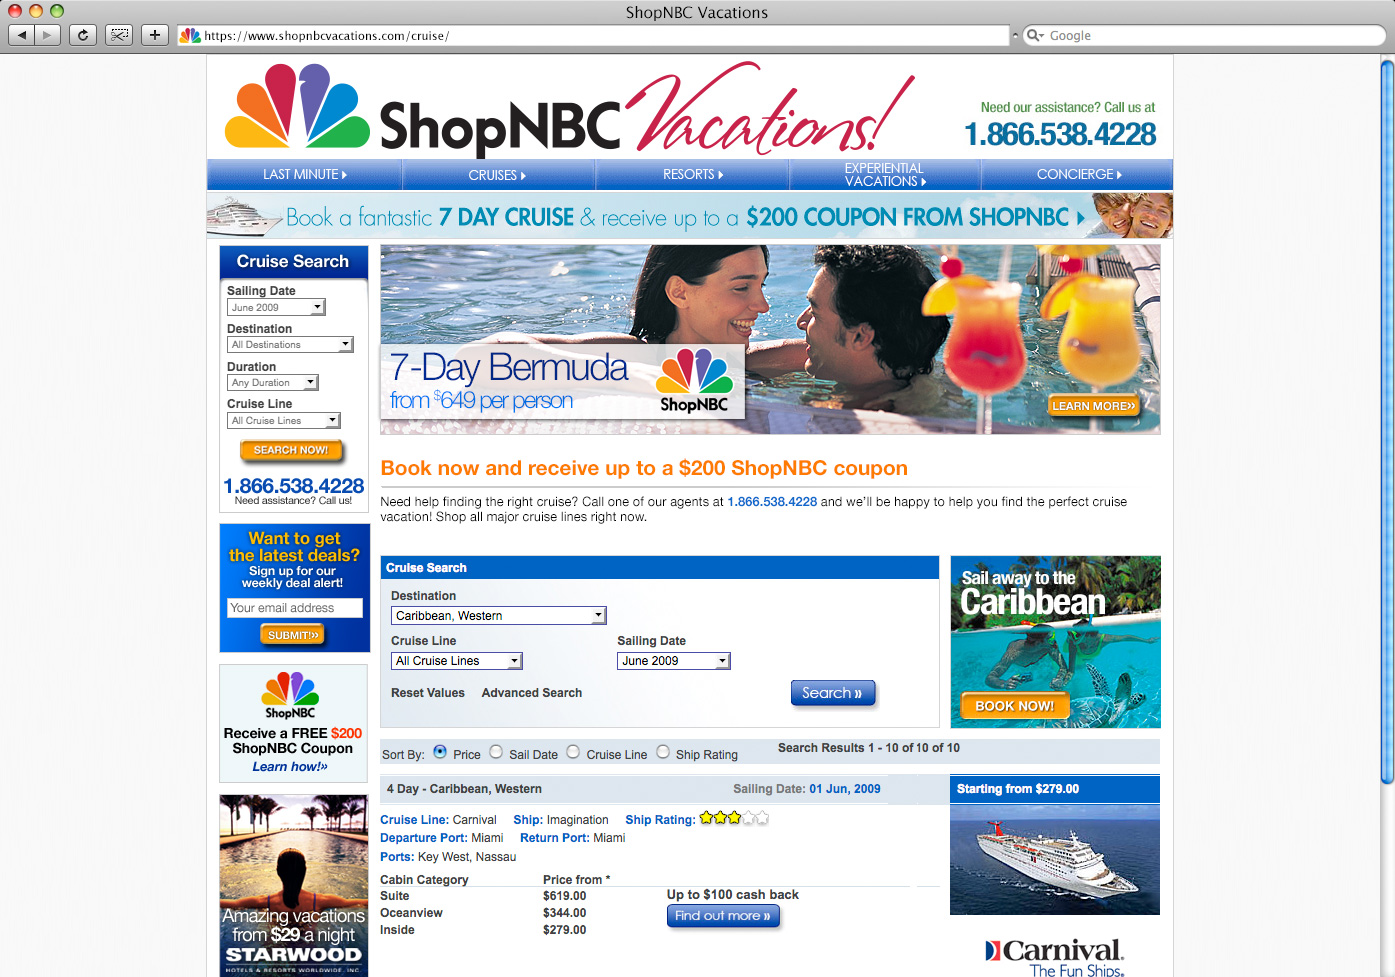 ShopNBC-Vactions-Cruise-Home